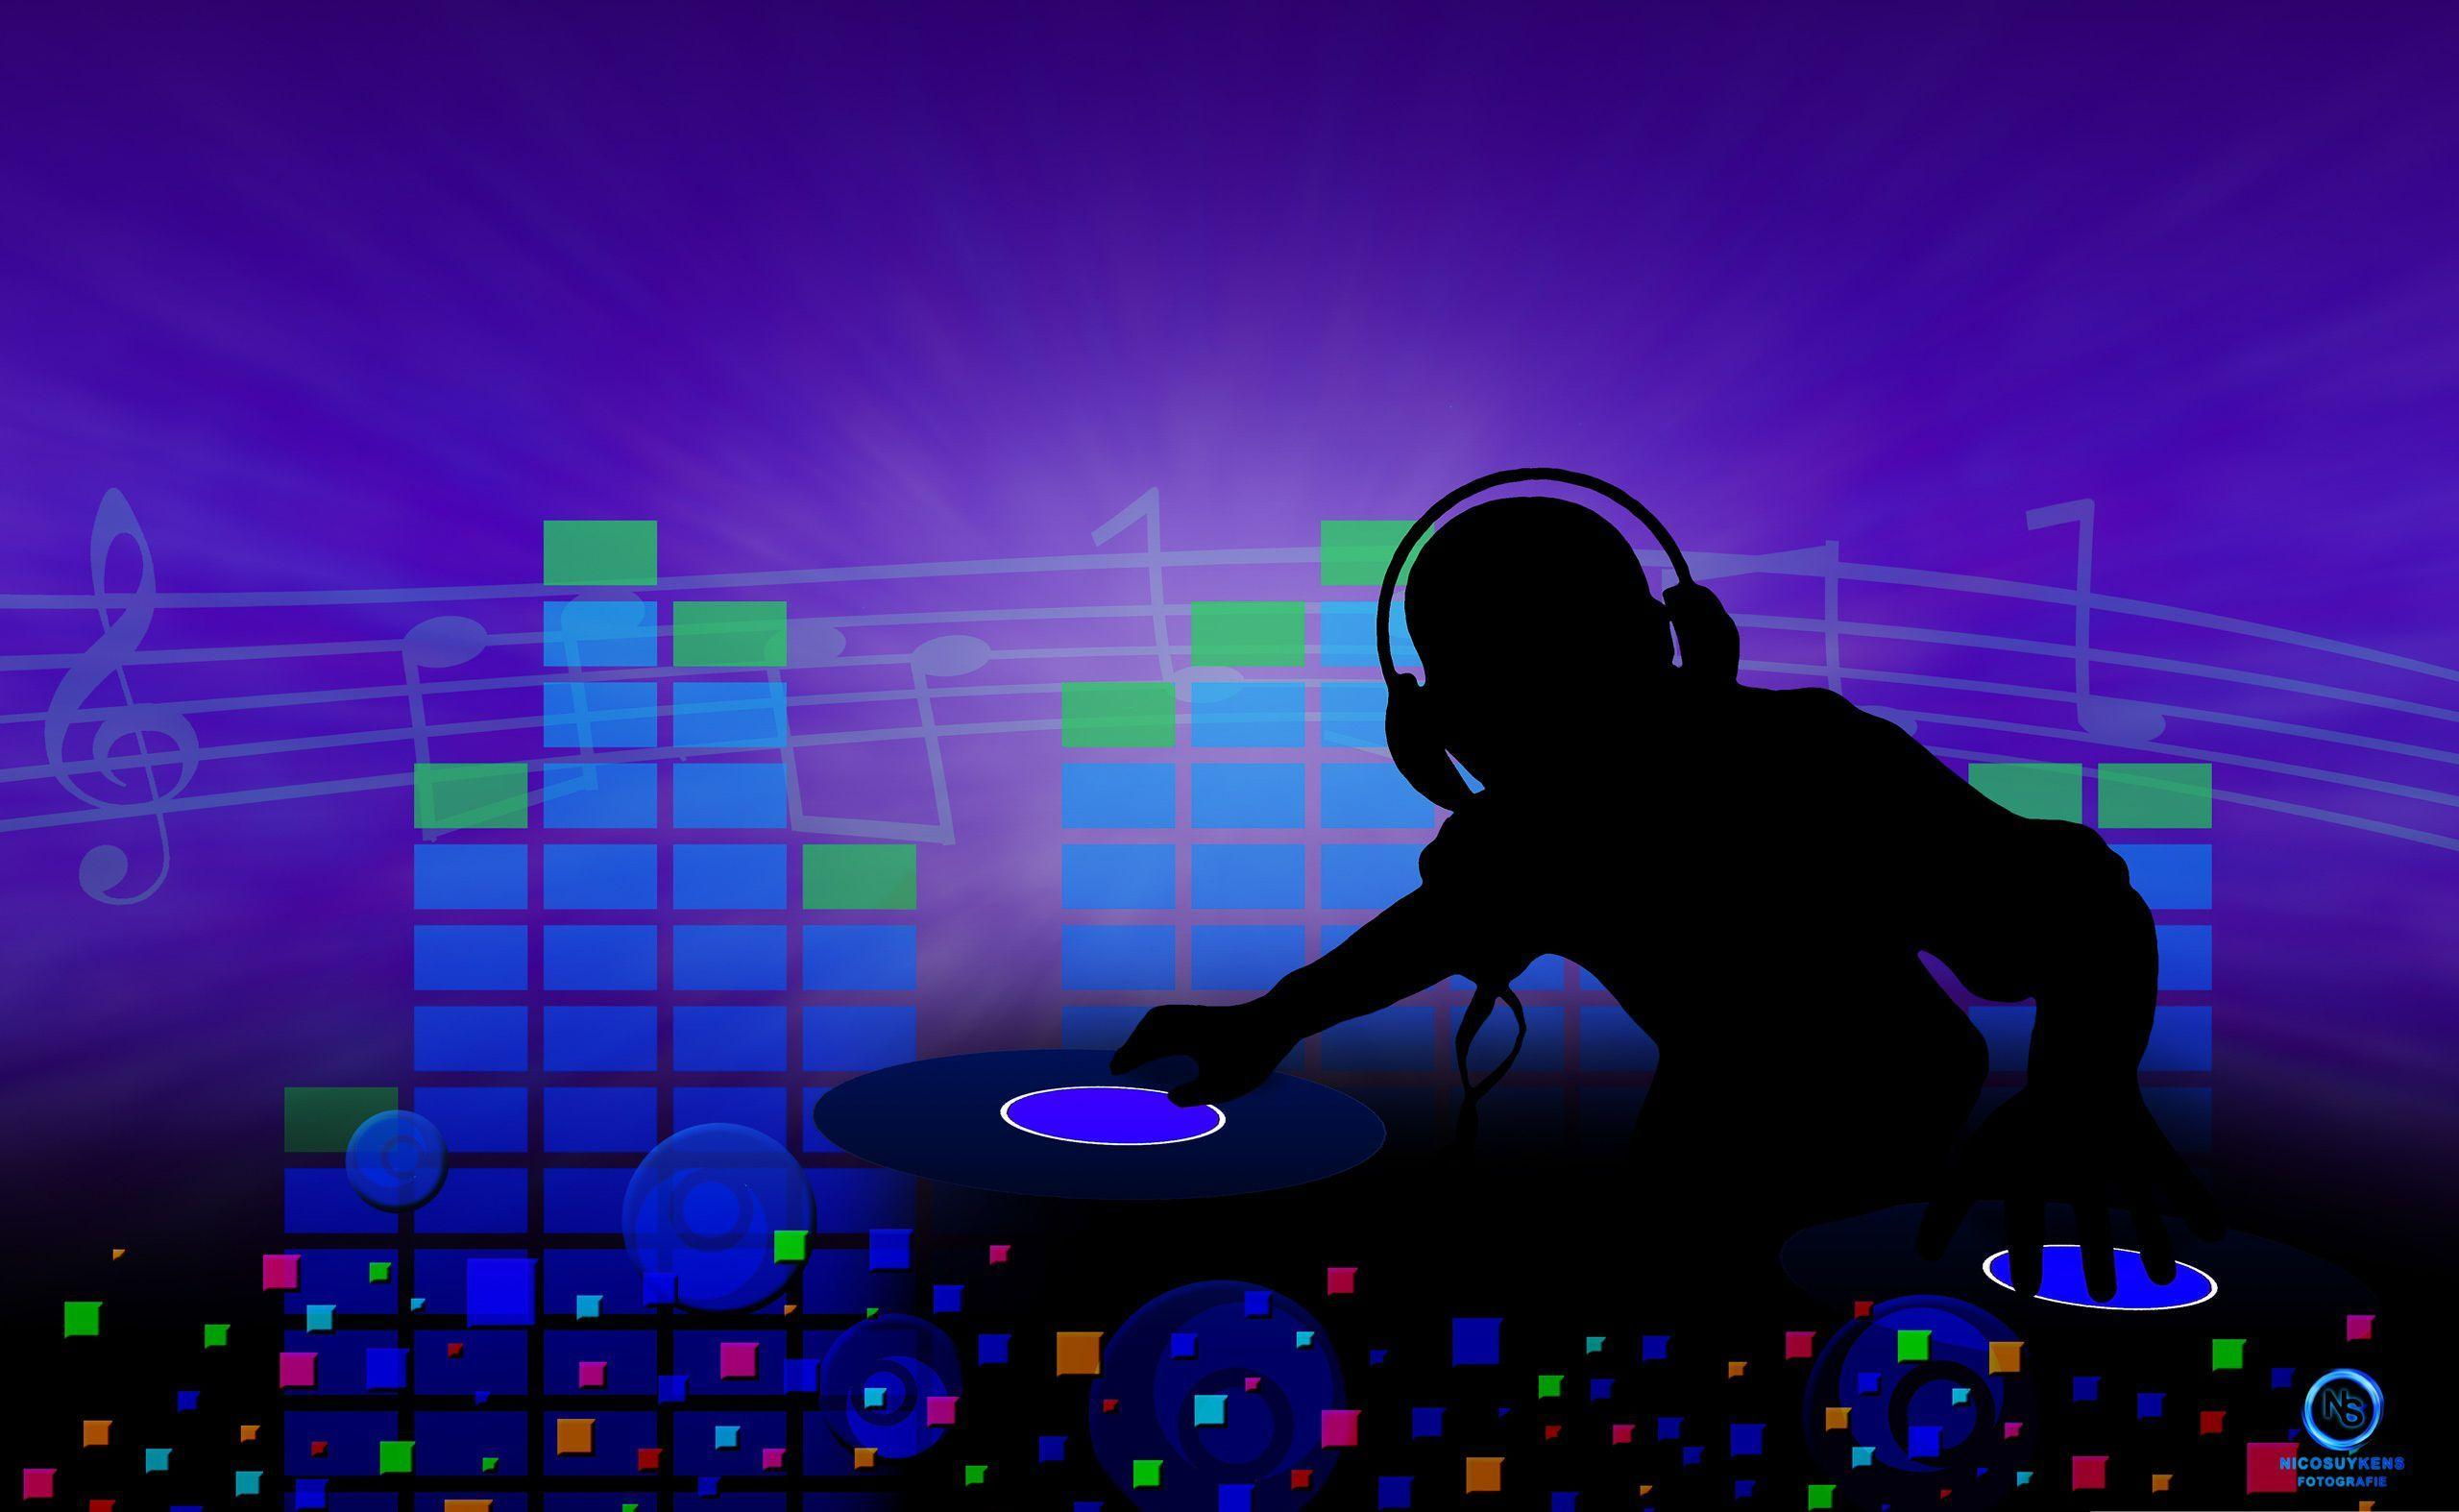 dj background wallpaper for computer - photo #10